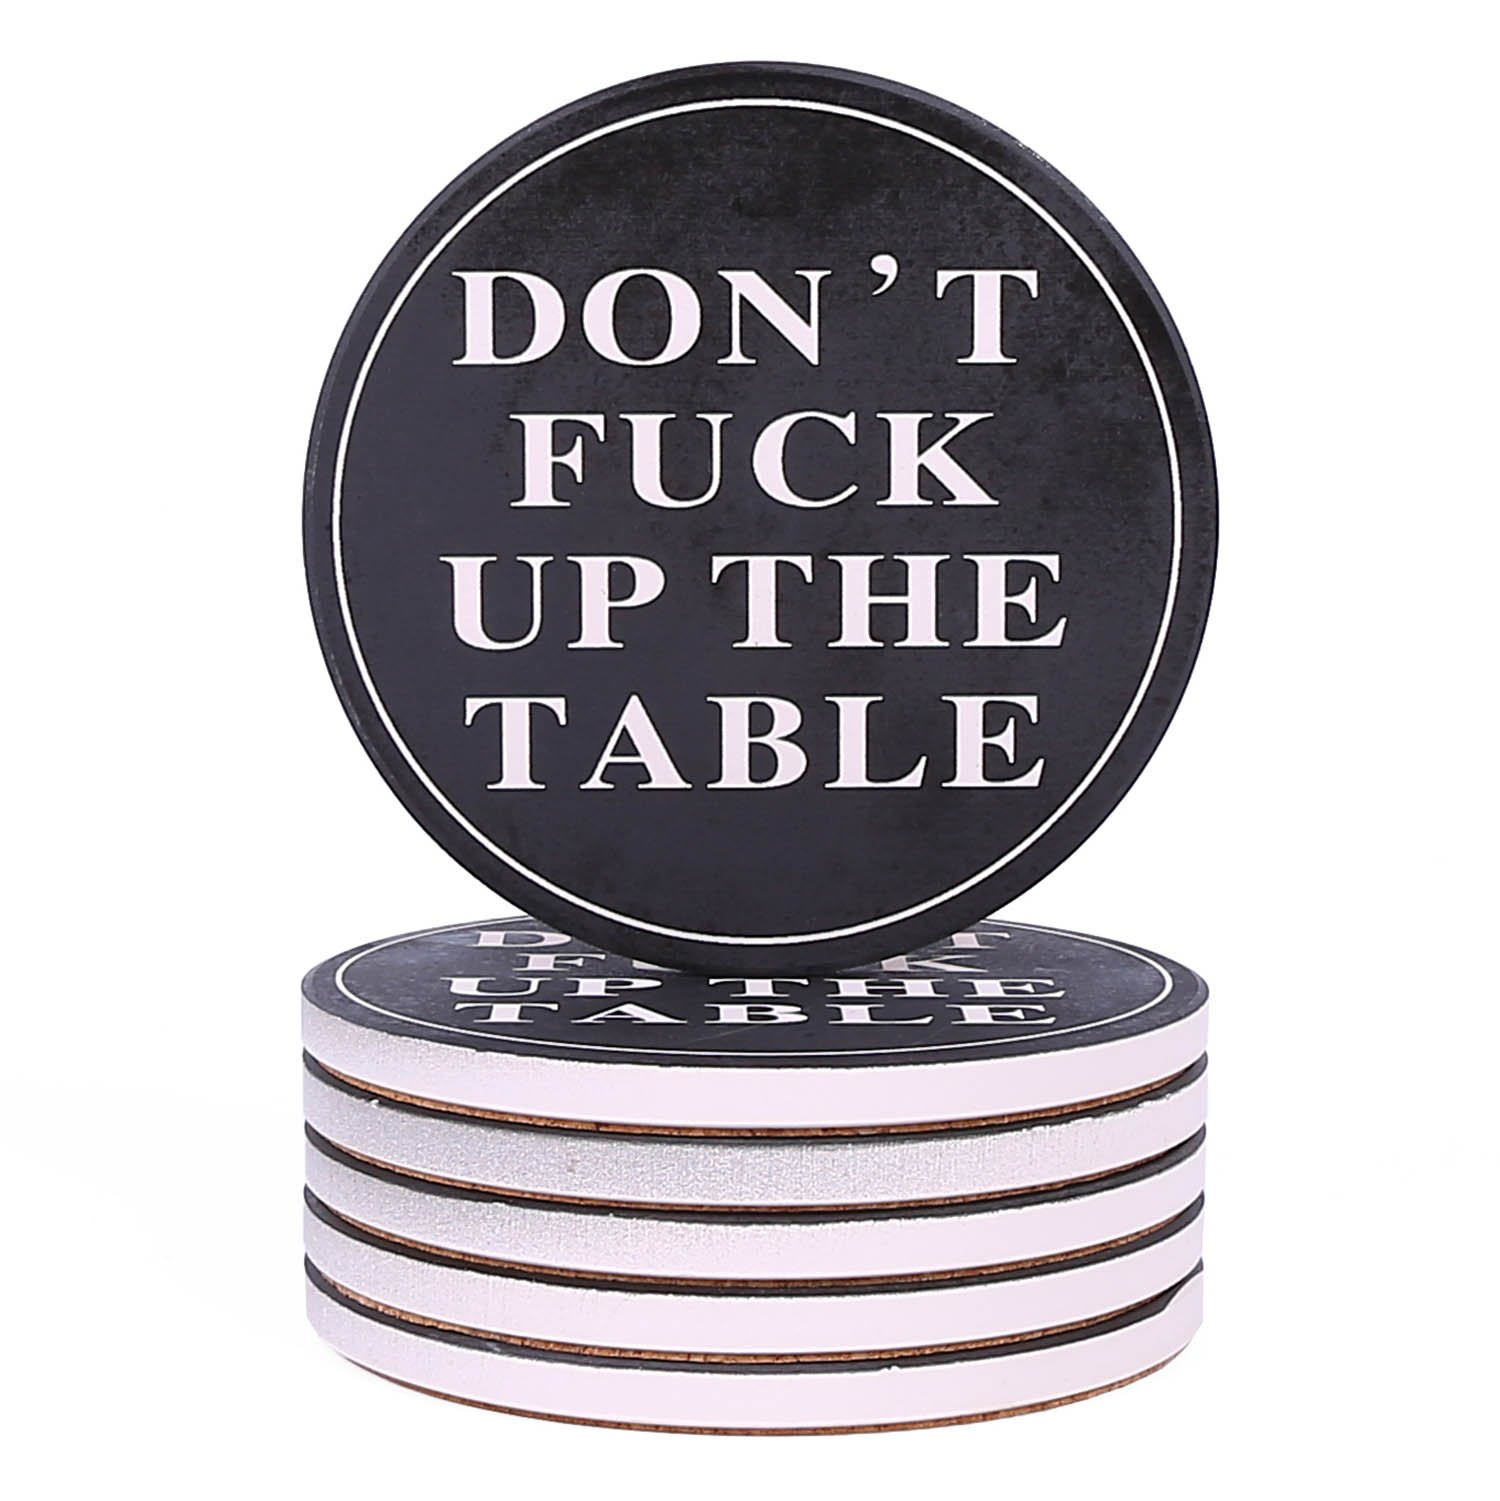 Coasters For Drinks Absorbent - DON'T FΛCK UP MY TABLE - Passive Aggressive Funny Coaster Set 6 Pack In Black With Cork Backing, Prevent Furniture from Dirty and Scratched by Ankzon (Image #1)